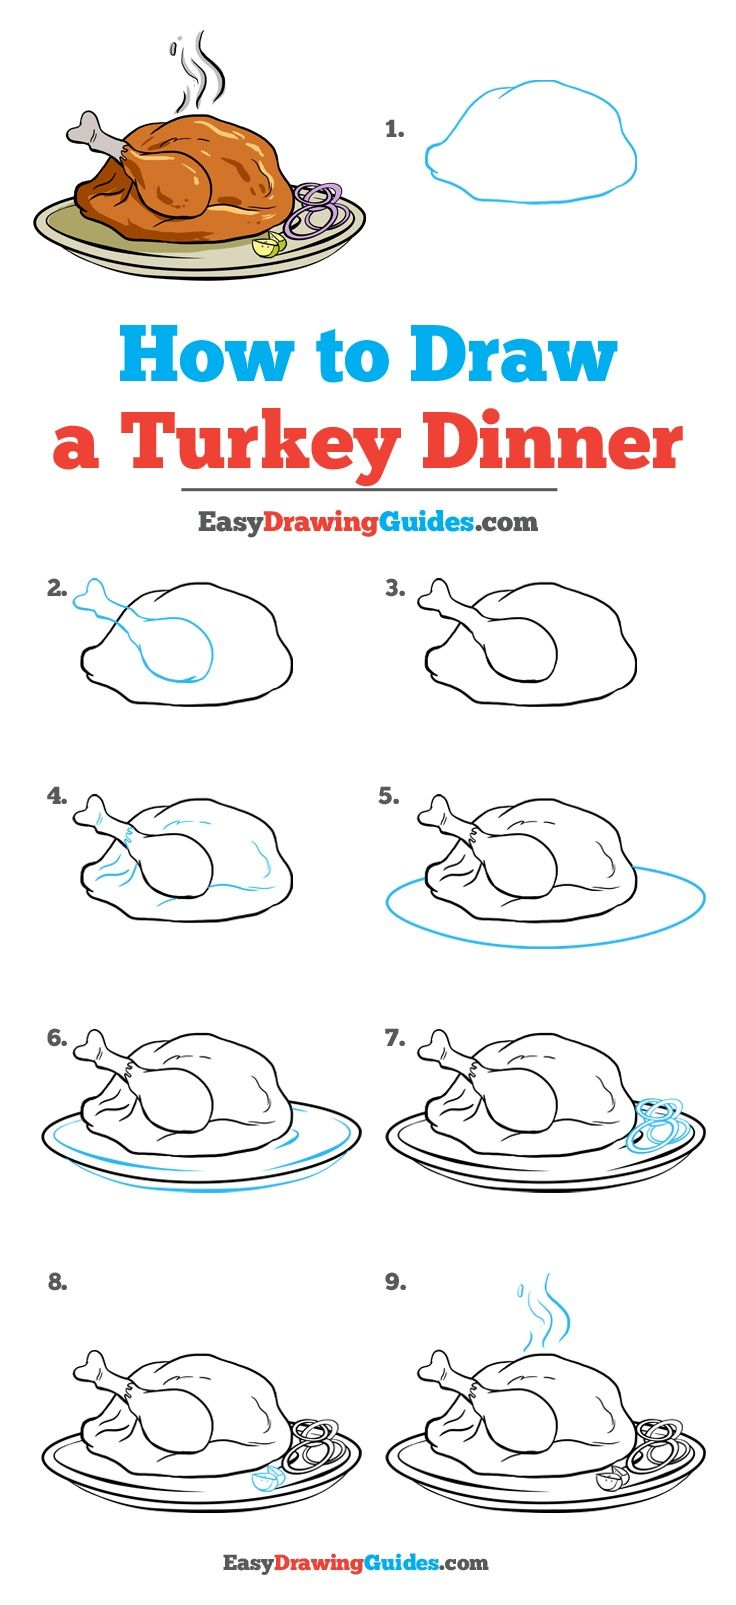 Learn How to Draw a Turkey Dinner: Easy Step-by-Step Drawing Tutorial for Kids and Beginners. #TurkeyDinner #drawingtutorial #easydrawing See the full tutorial at https://easydrawingguides.com/how-to-draw-turkey-dinner/.